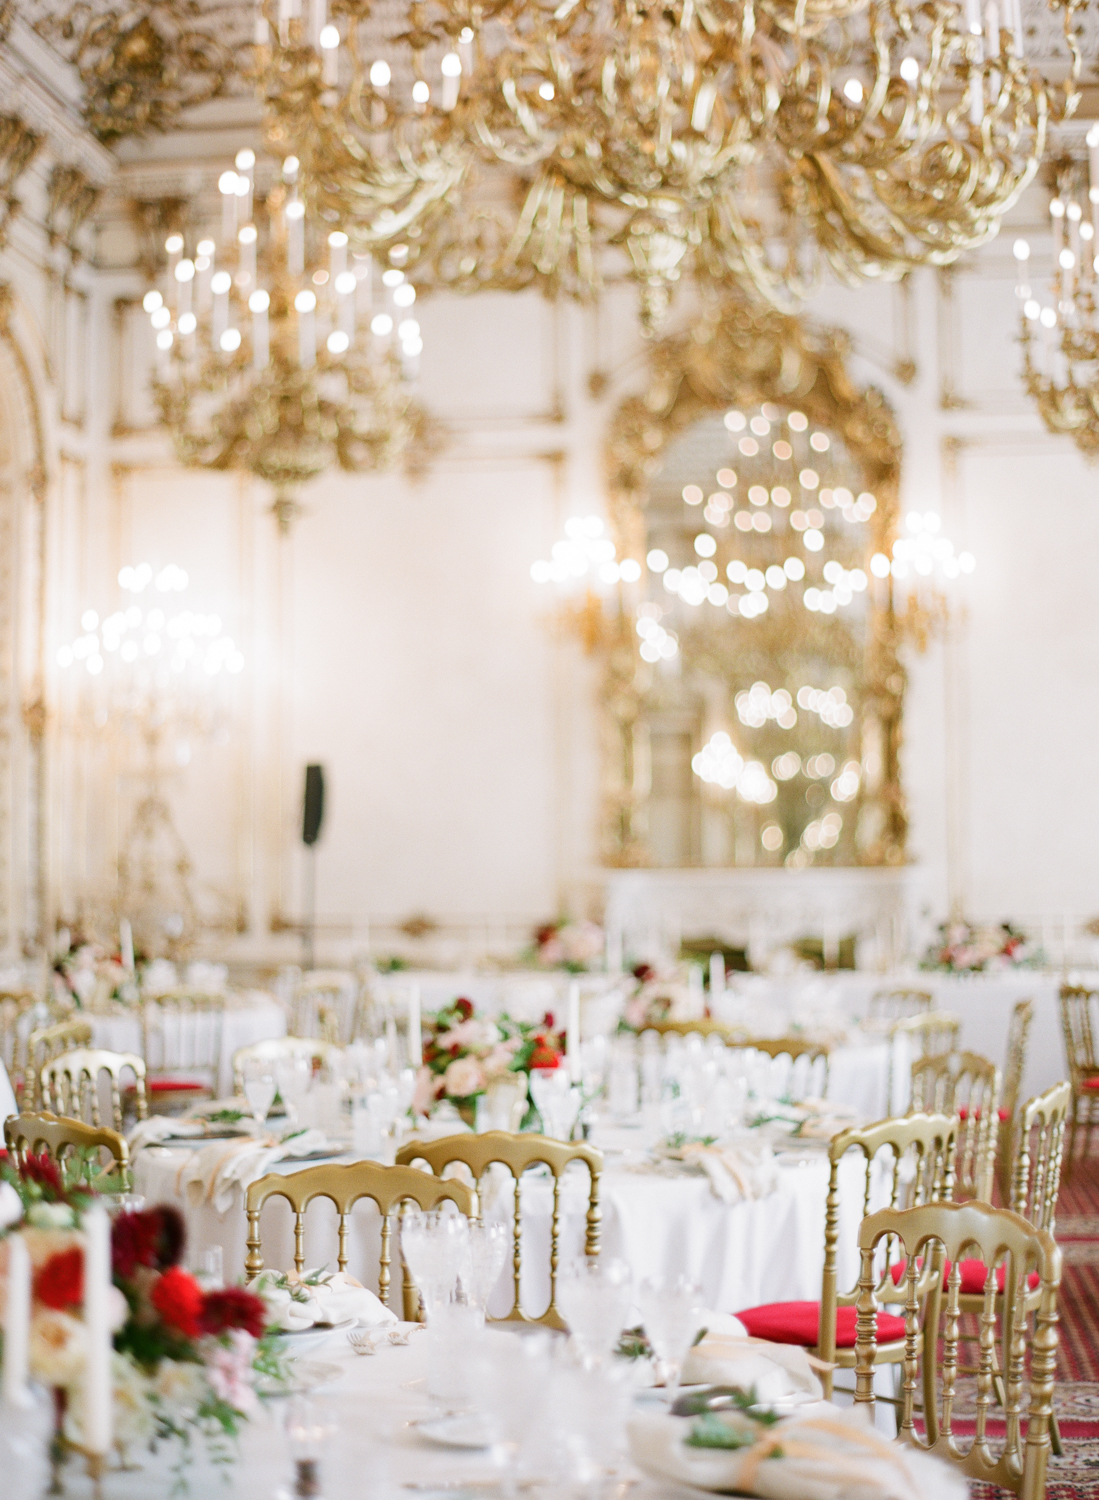 palais pallavicini wedding hotel imperial vienna wedding photographer nikol bodnarova photography 148.JPG